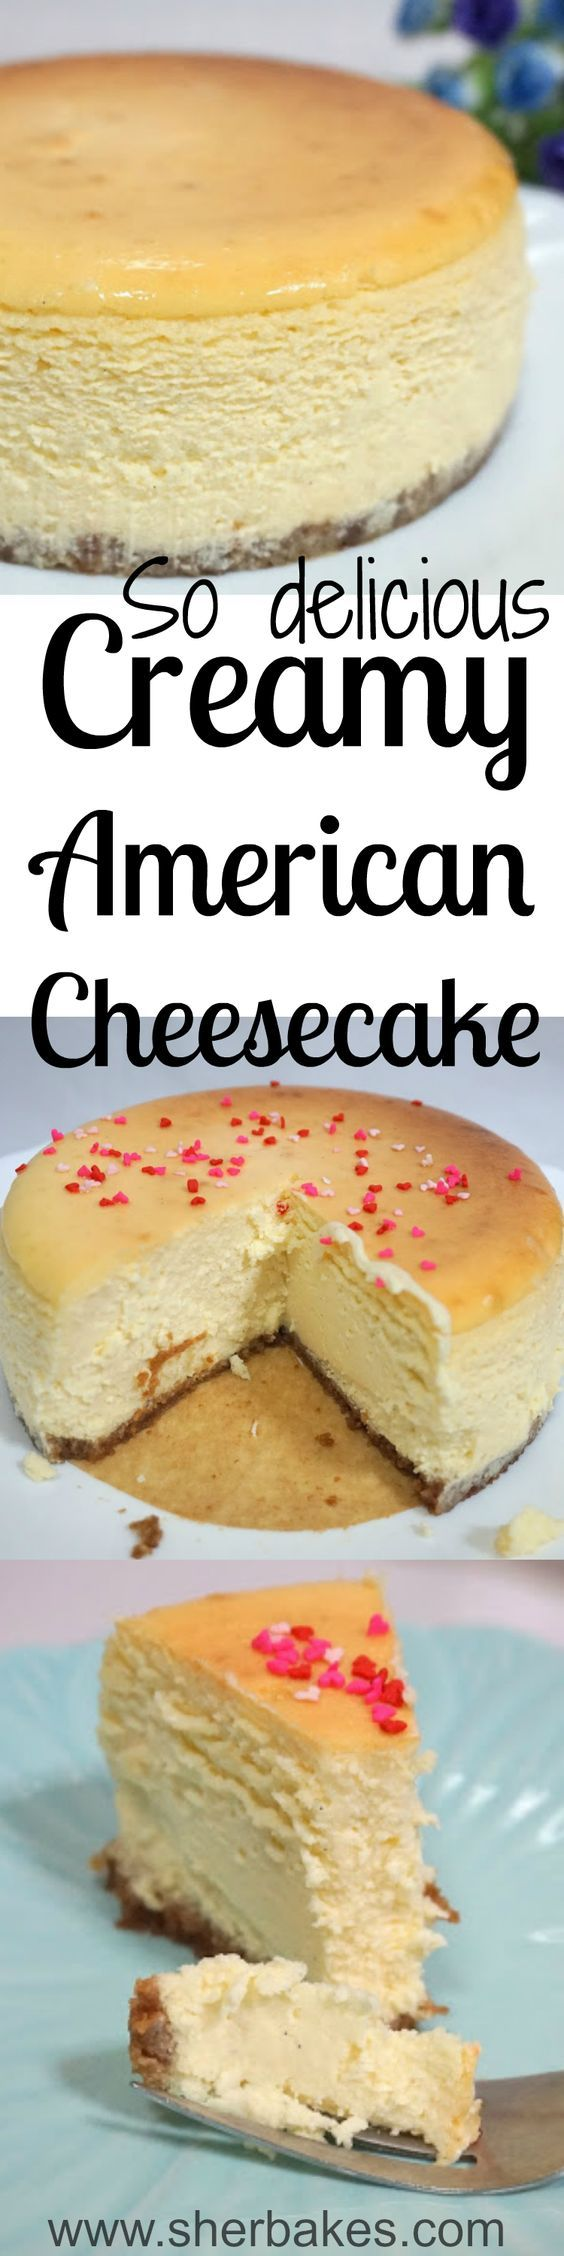 Creamy American Cheesecake ~ This cheesecake is incredible!